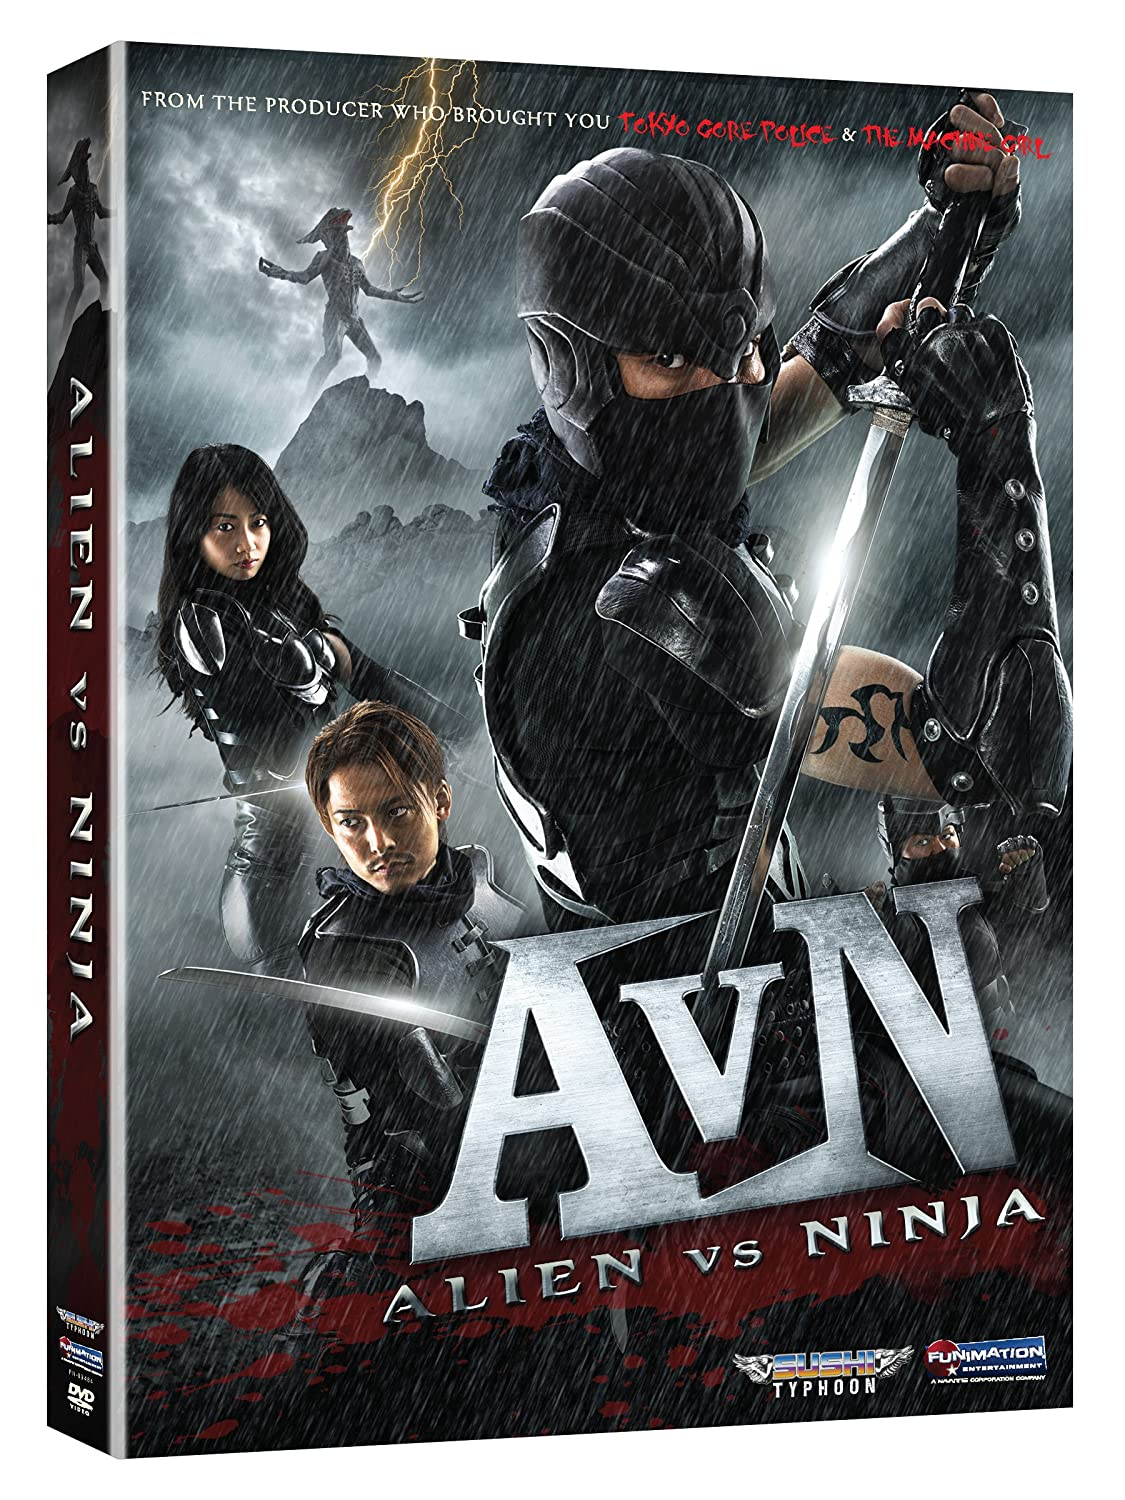 Alien Vs Ninja [Reino Unido] [DVD]: Amazon.es: Shuji ...